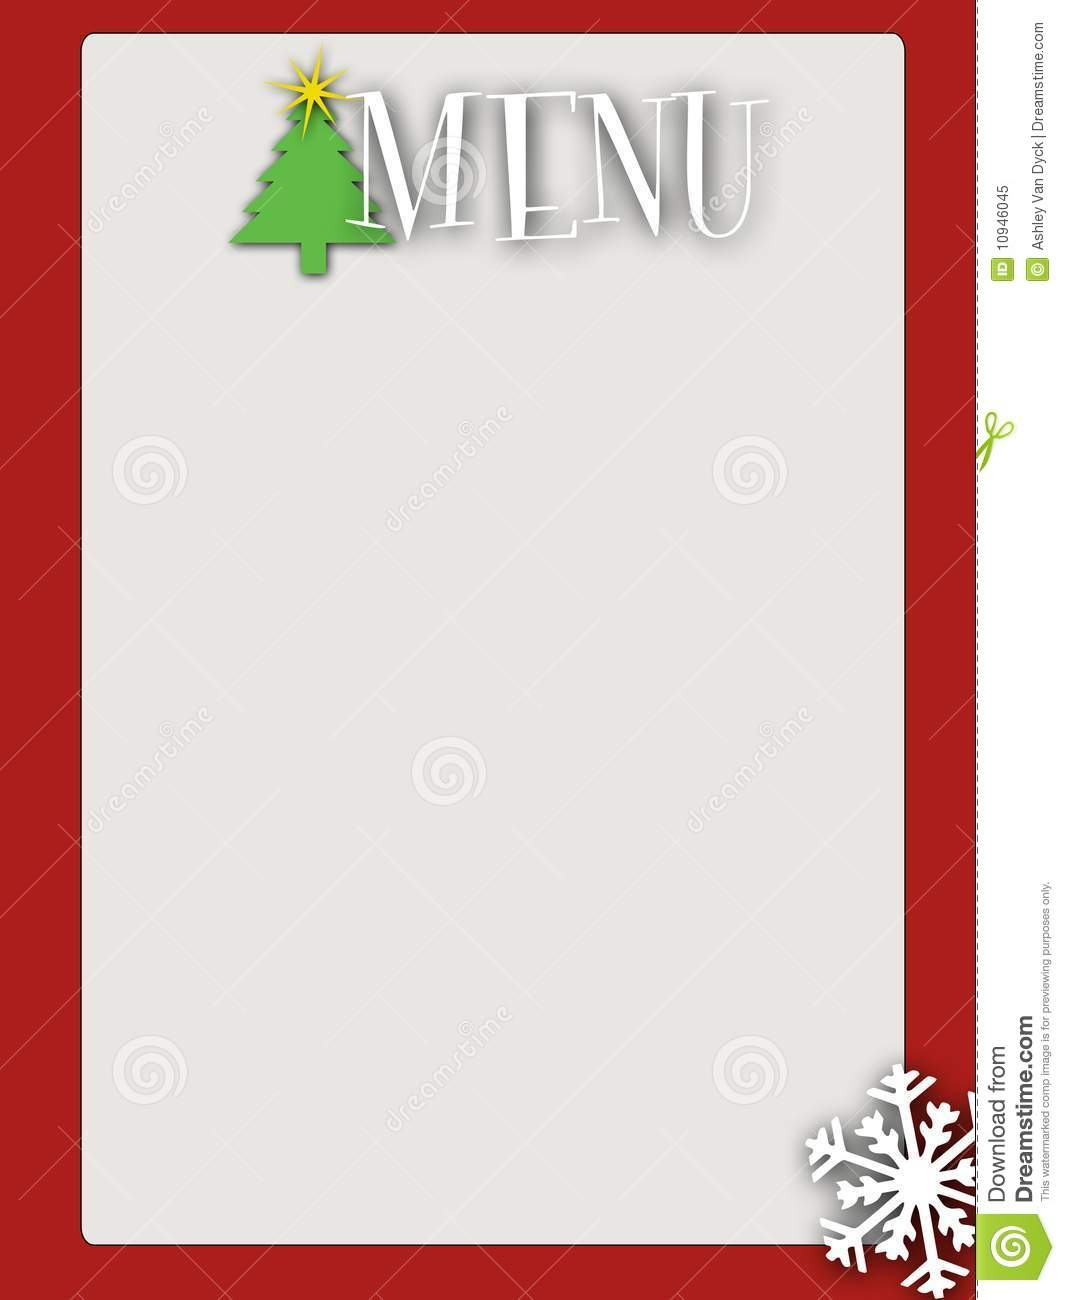 Free Blank Christmas Menu Templates Fun For Christmas Halloween